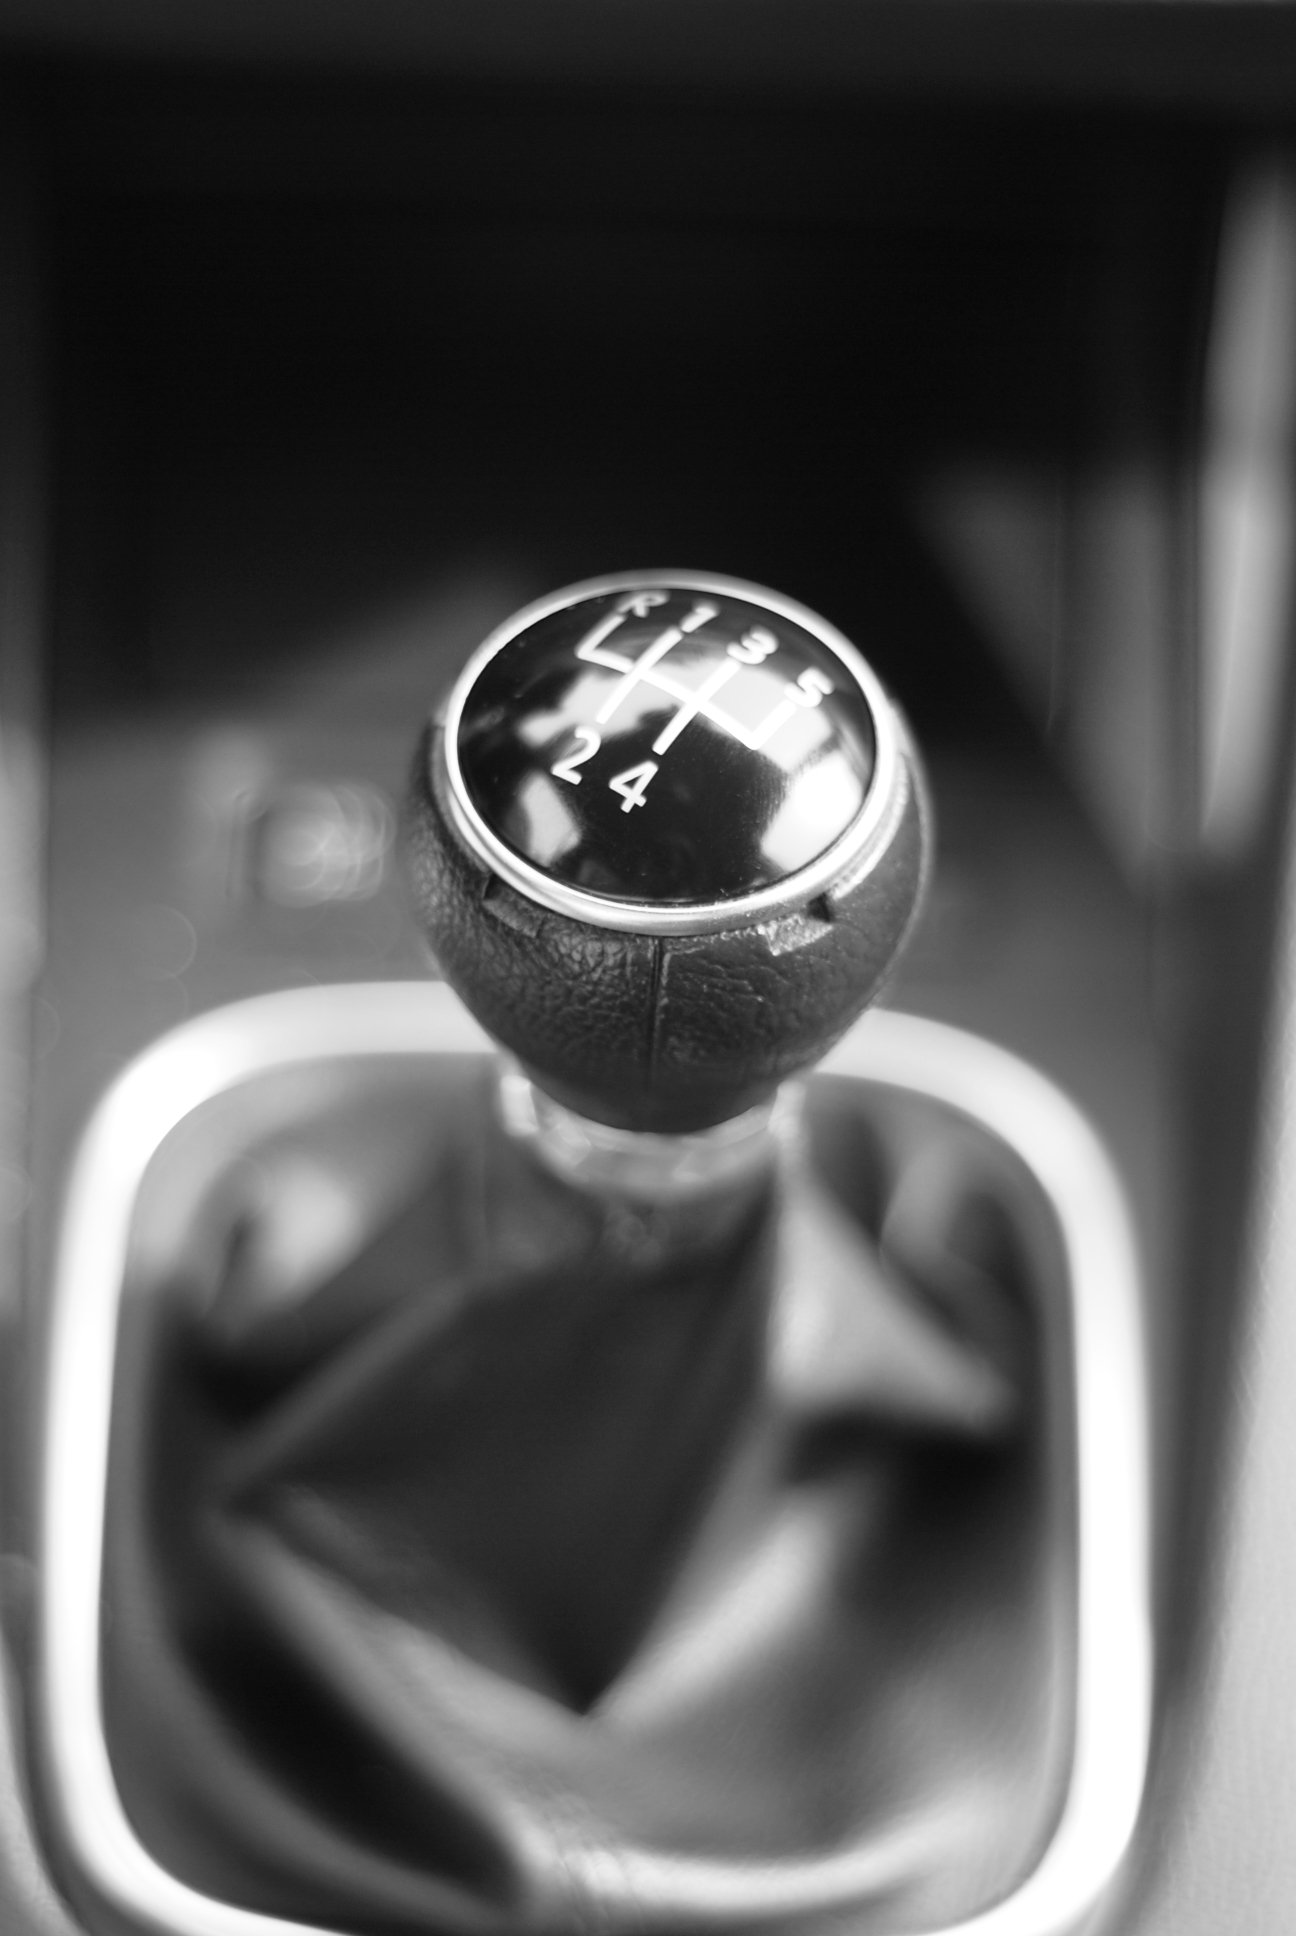 Whether you have a manual or automatic get professional transmission repair in Mesa | (480) 986-7367